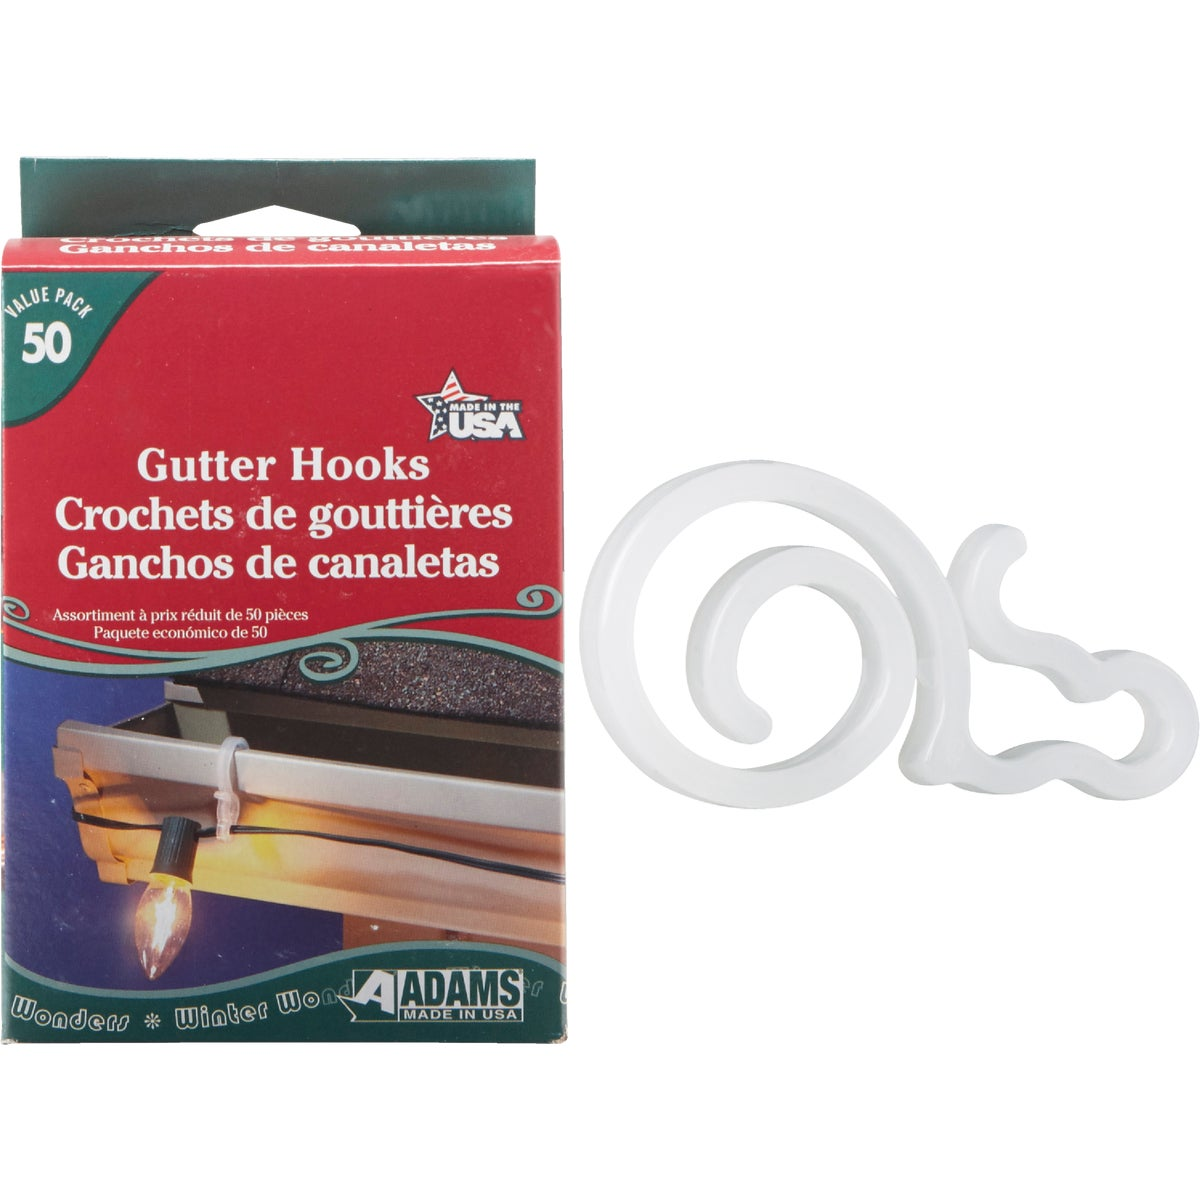 50PK GUTTER HOOKS - 2460991633 by Adams Mfg/christmas